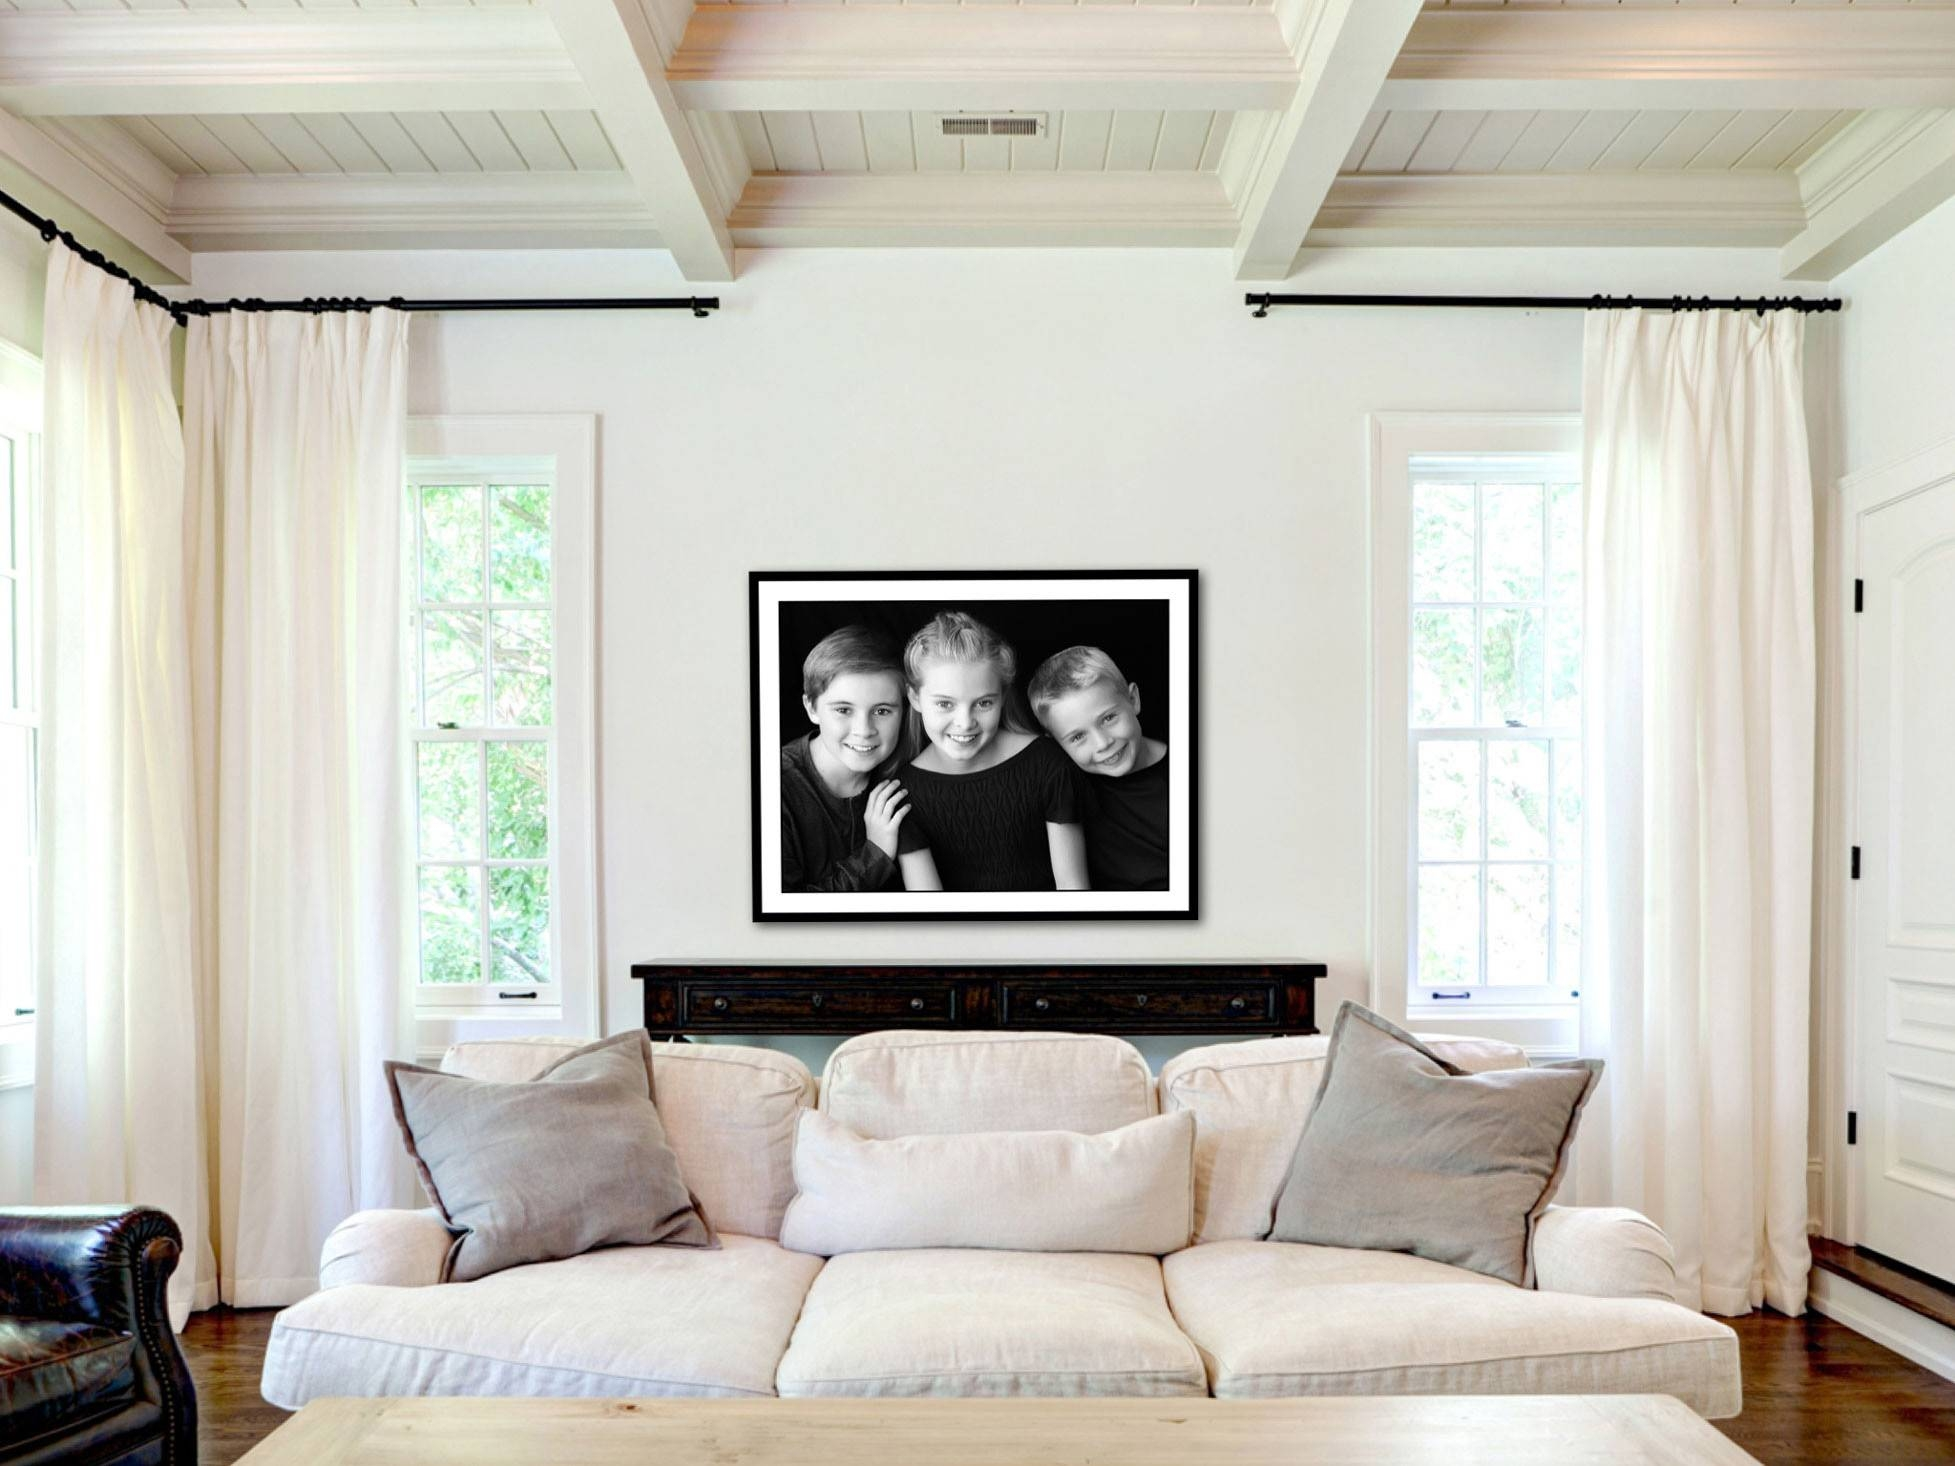 Black And White Photography Wall Art Ideas – In 2017 Photography Wall Art (View 3 of 25)